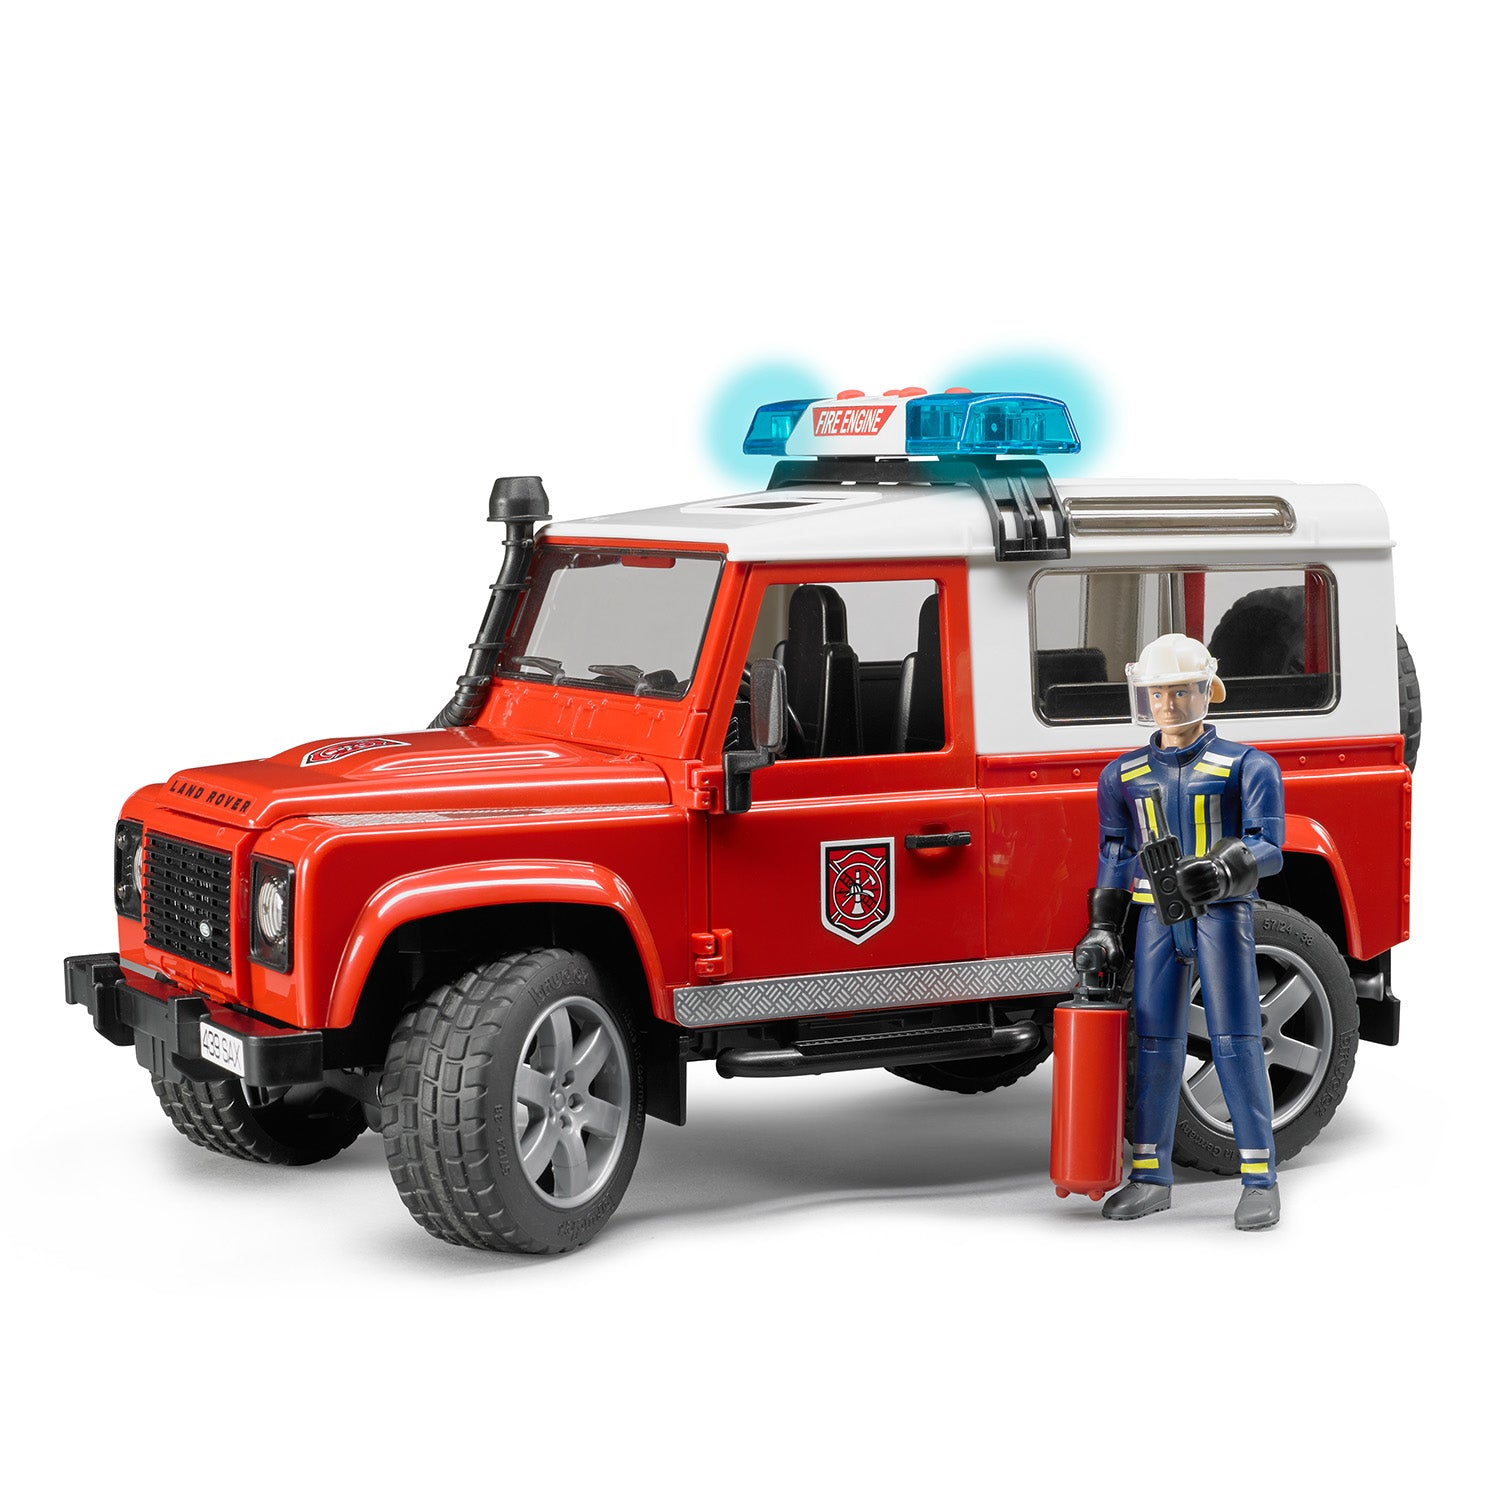 Land Rover Defender Station Wagon Fire Department Vehicle with Fireman